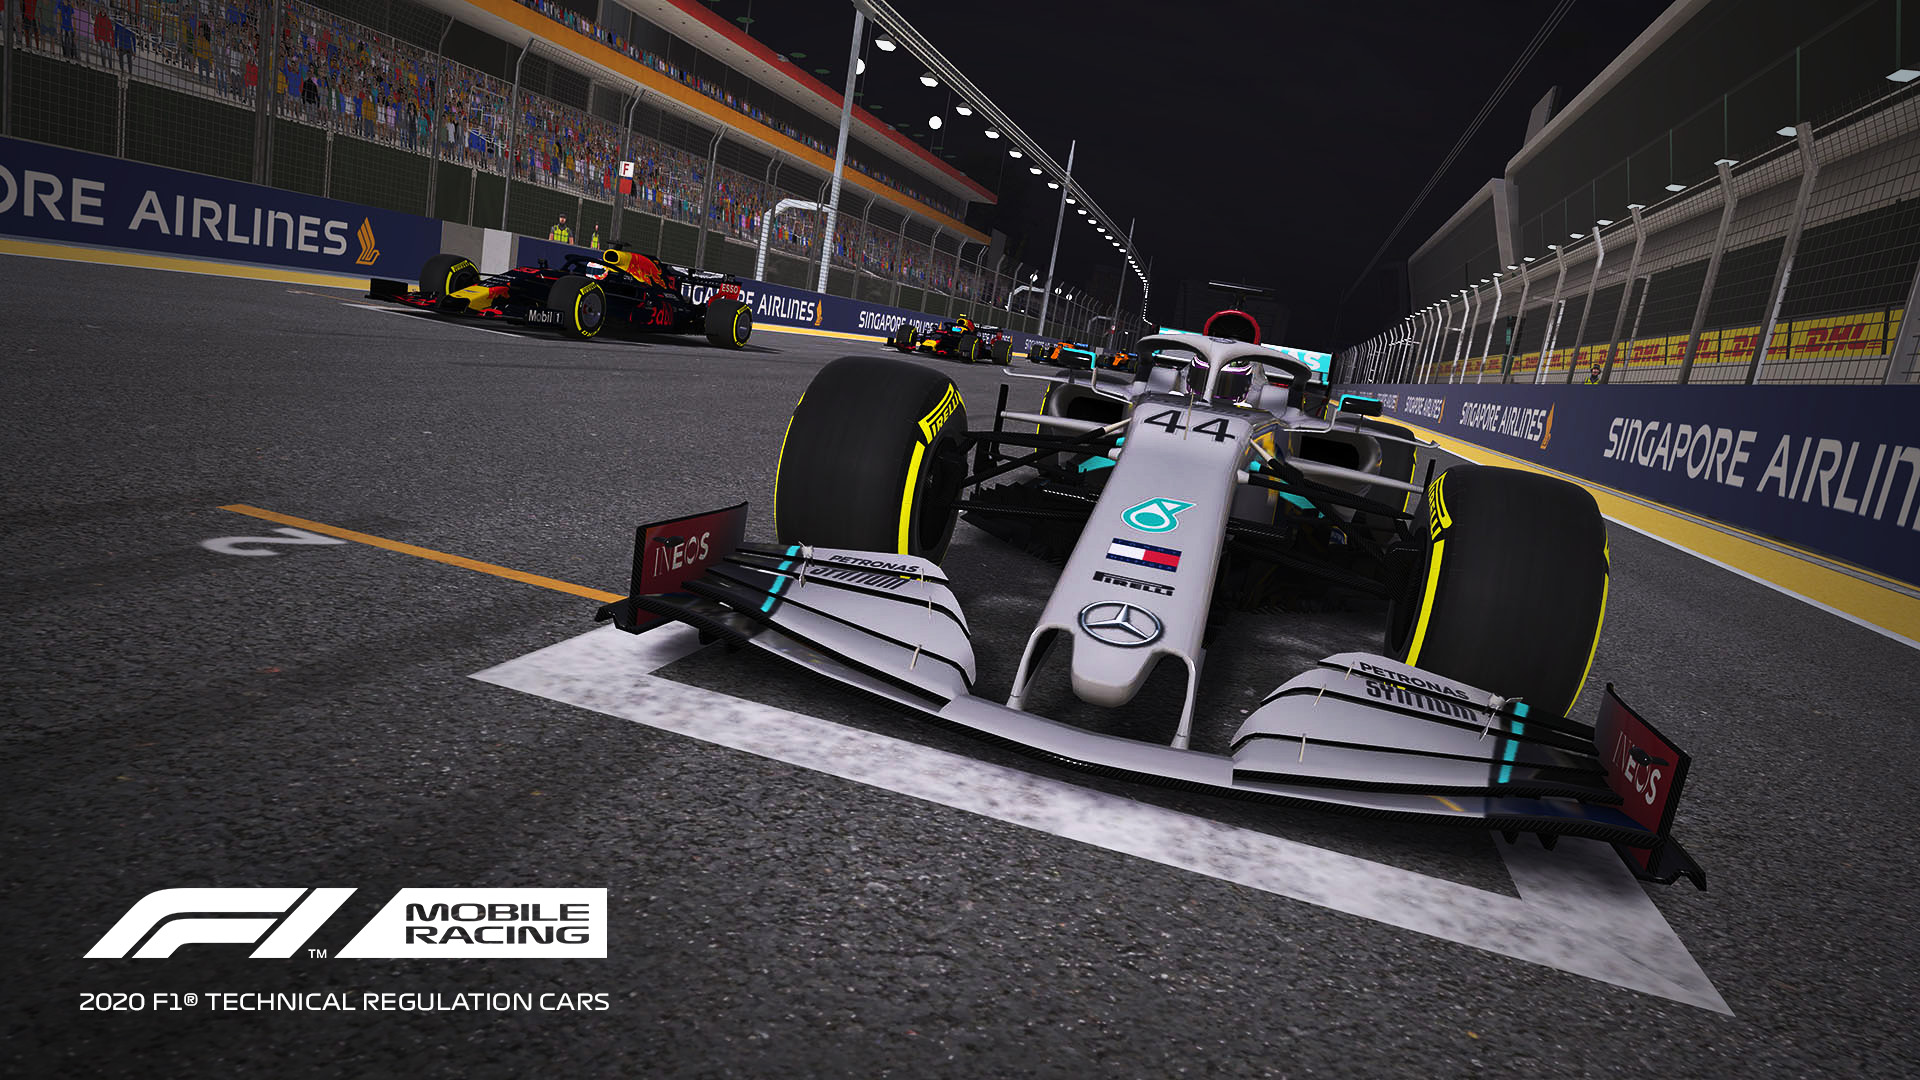 F1 Mobile Racing 2020 Pic 4